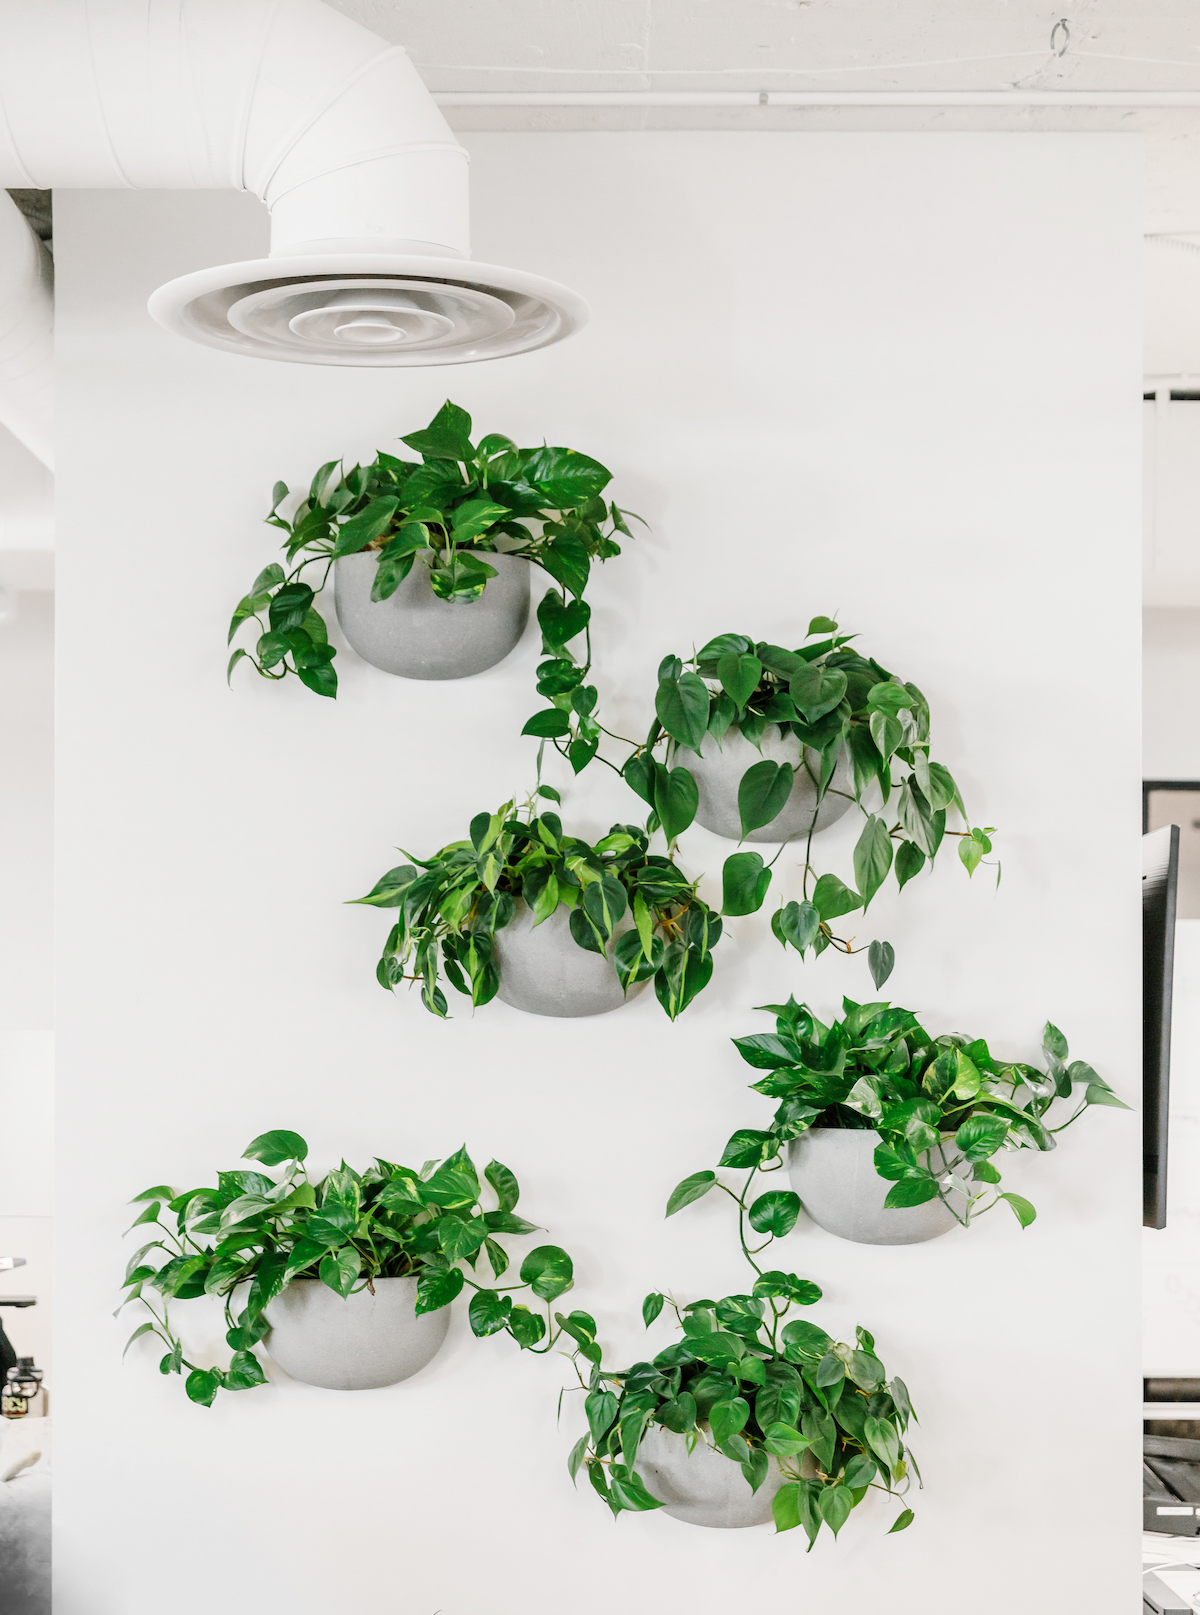 A living wall featuring potted plants down a column in the center of the Artifact Uprising office